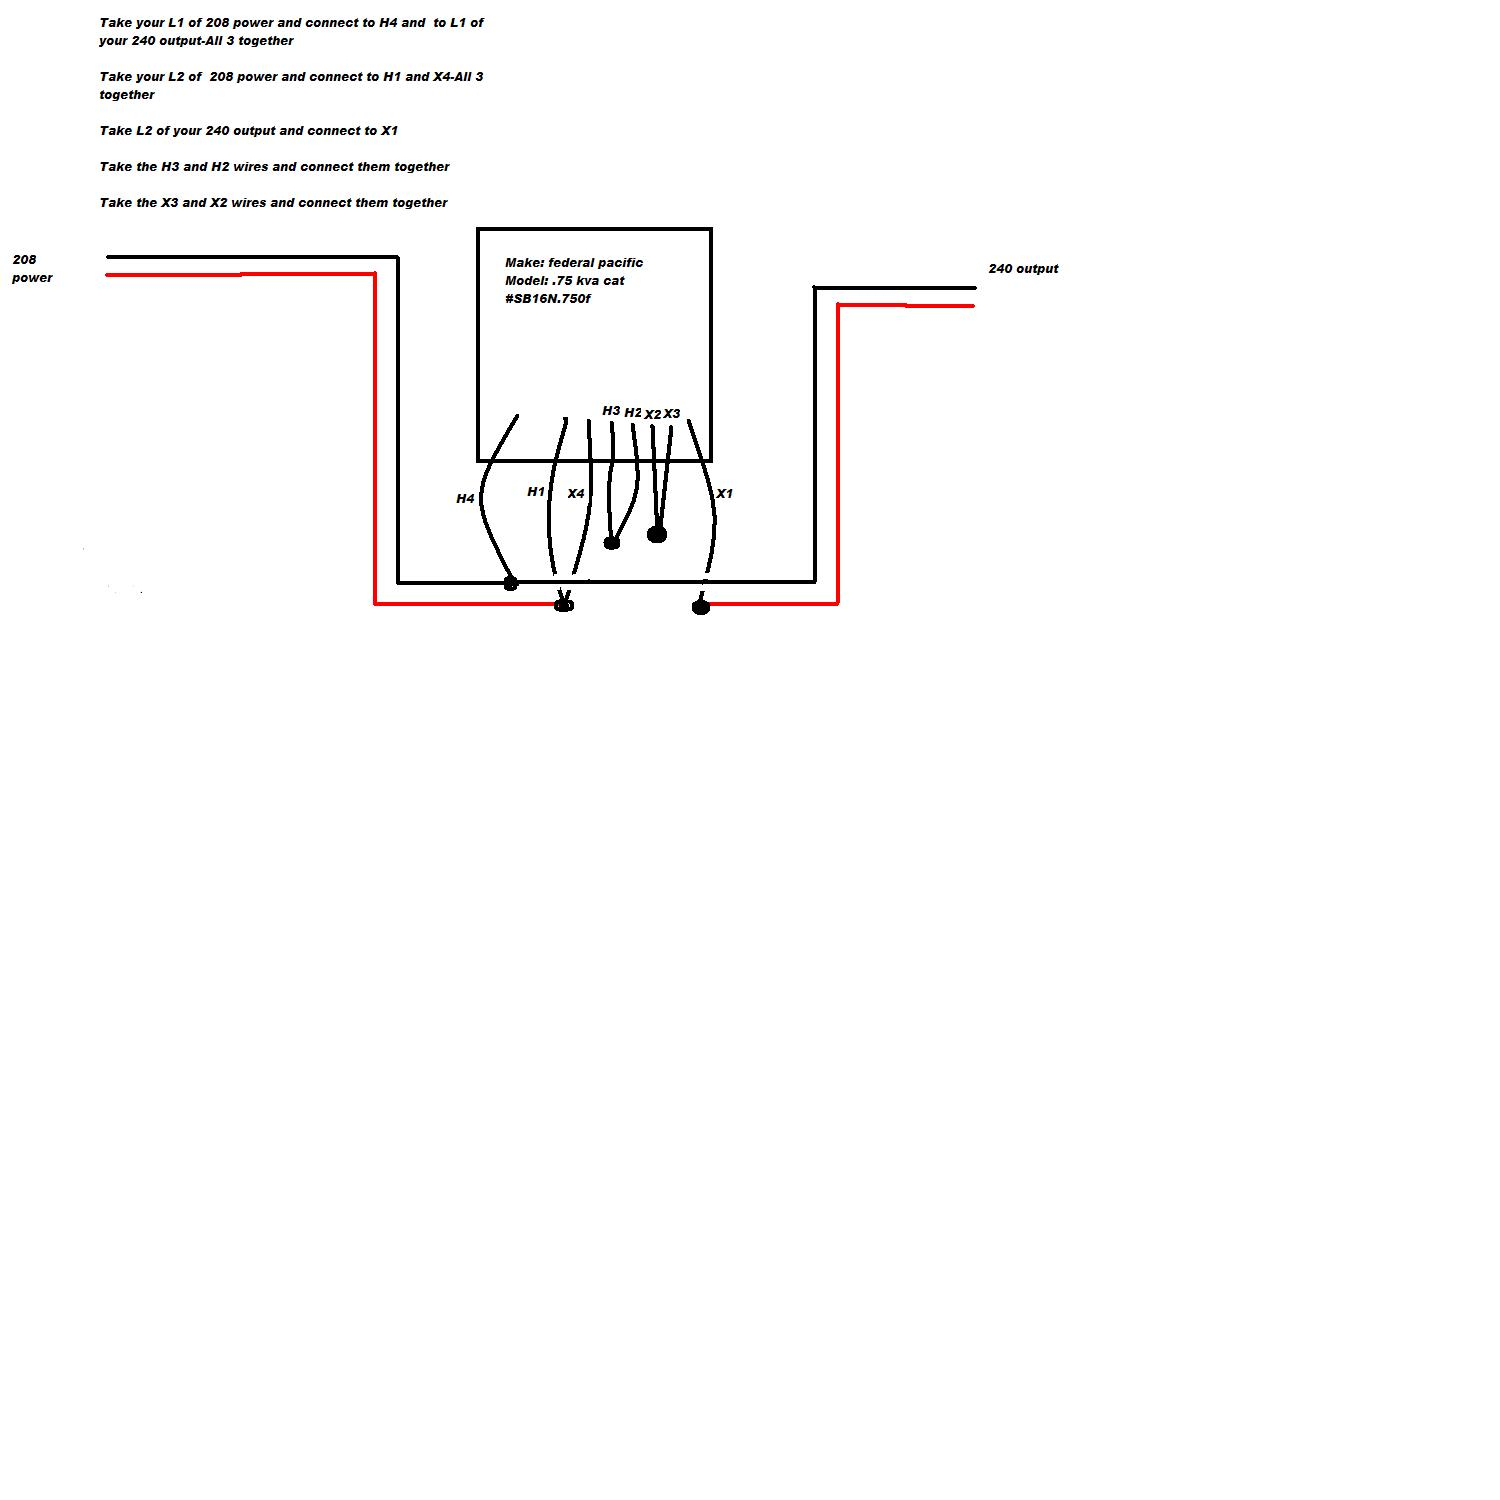 federal pacific buck boost transformer wiring diagram Collection-Federal Pacific Transformer Wiring Diagram Example Electrical 10-o